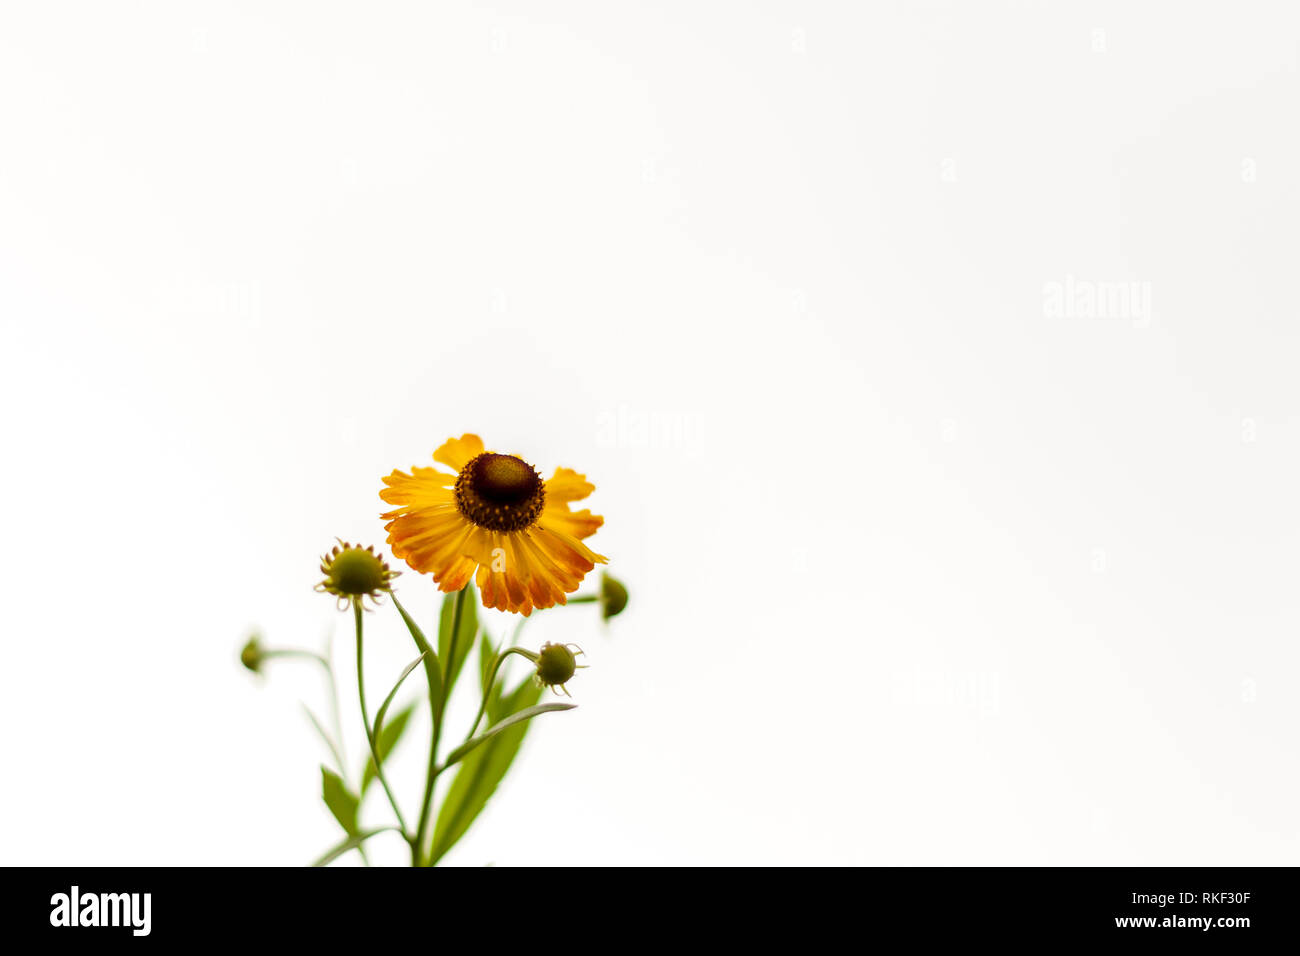 Yellow chamomile on the white background. Soft, gentle, airy, elegant artistic image. Selective focus. - Stock Image